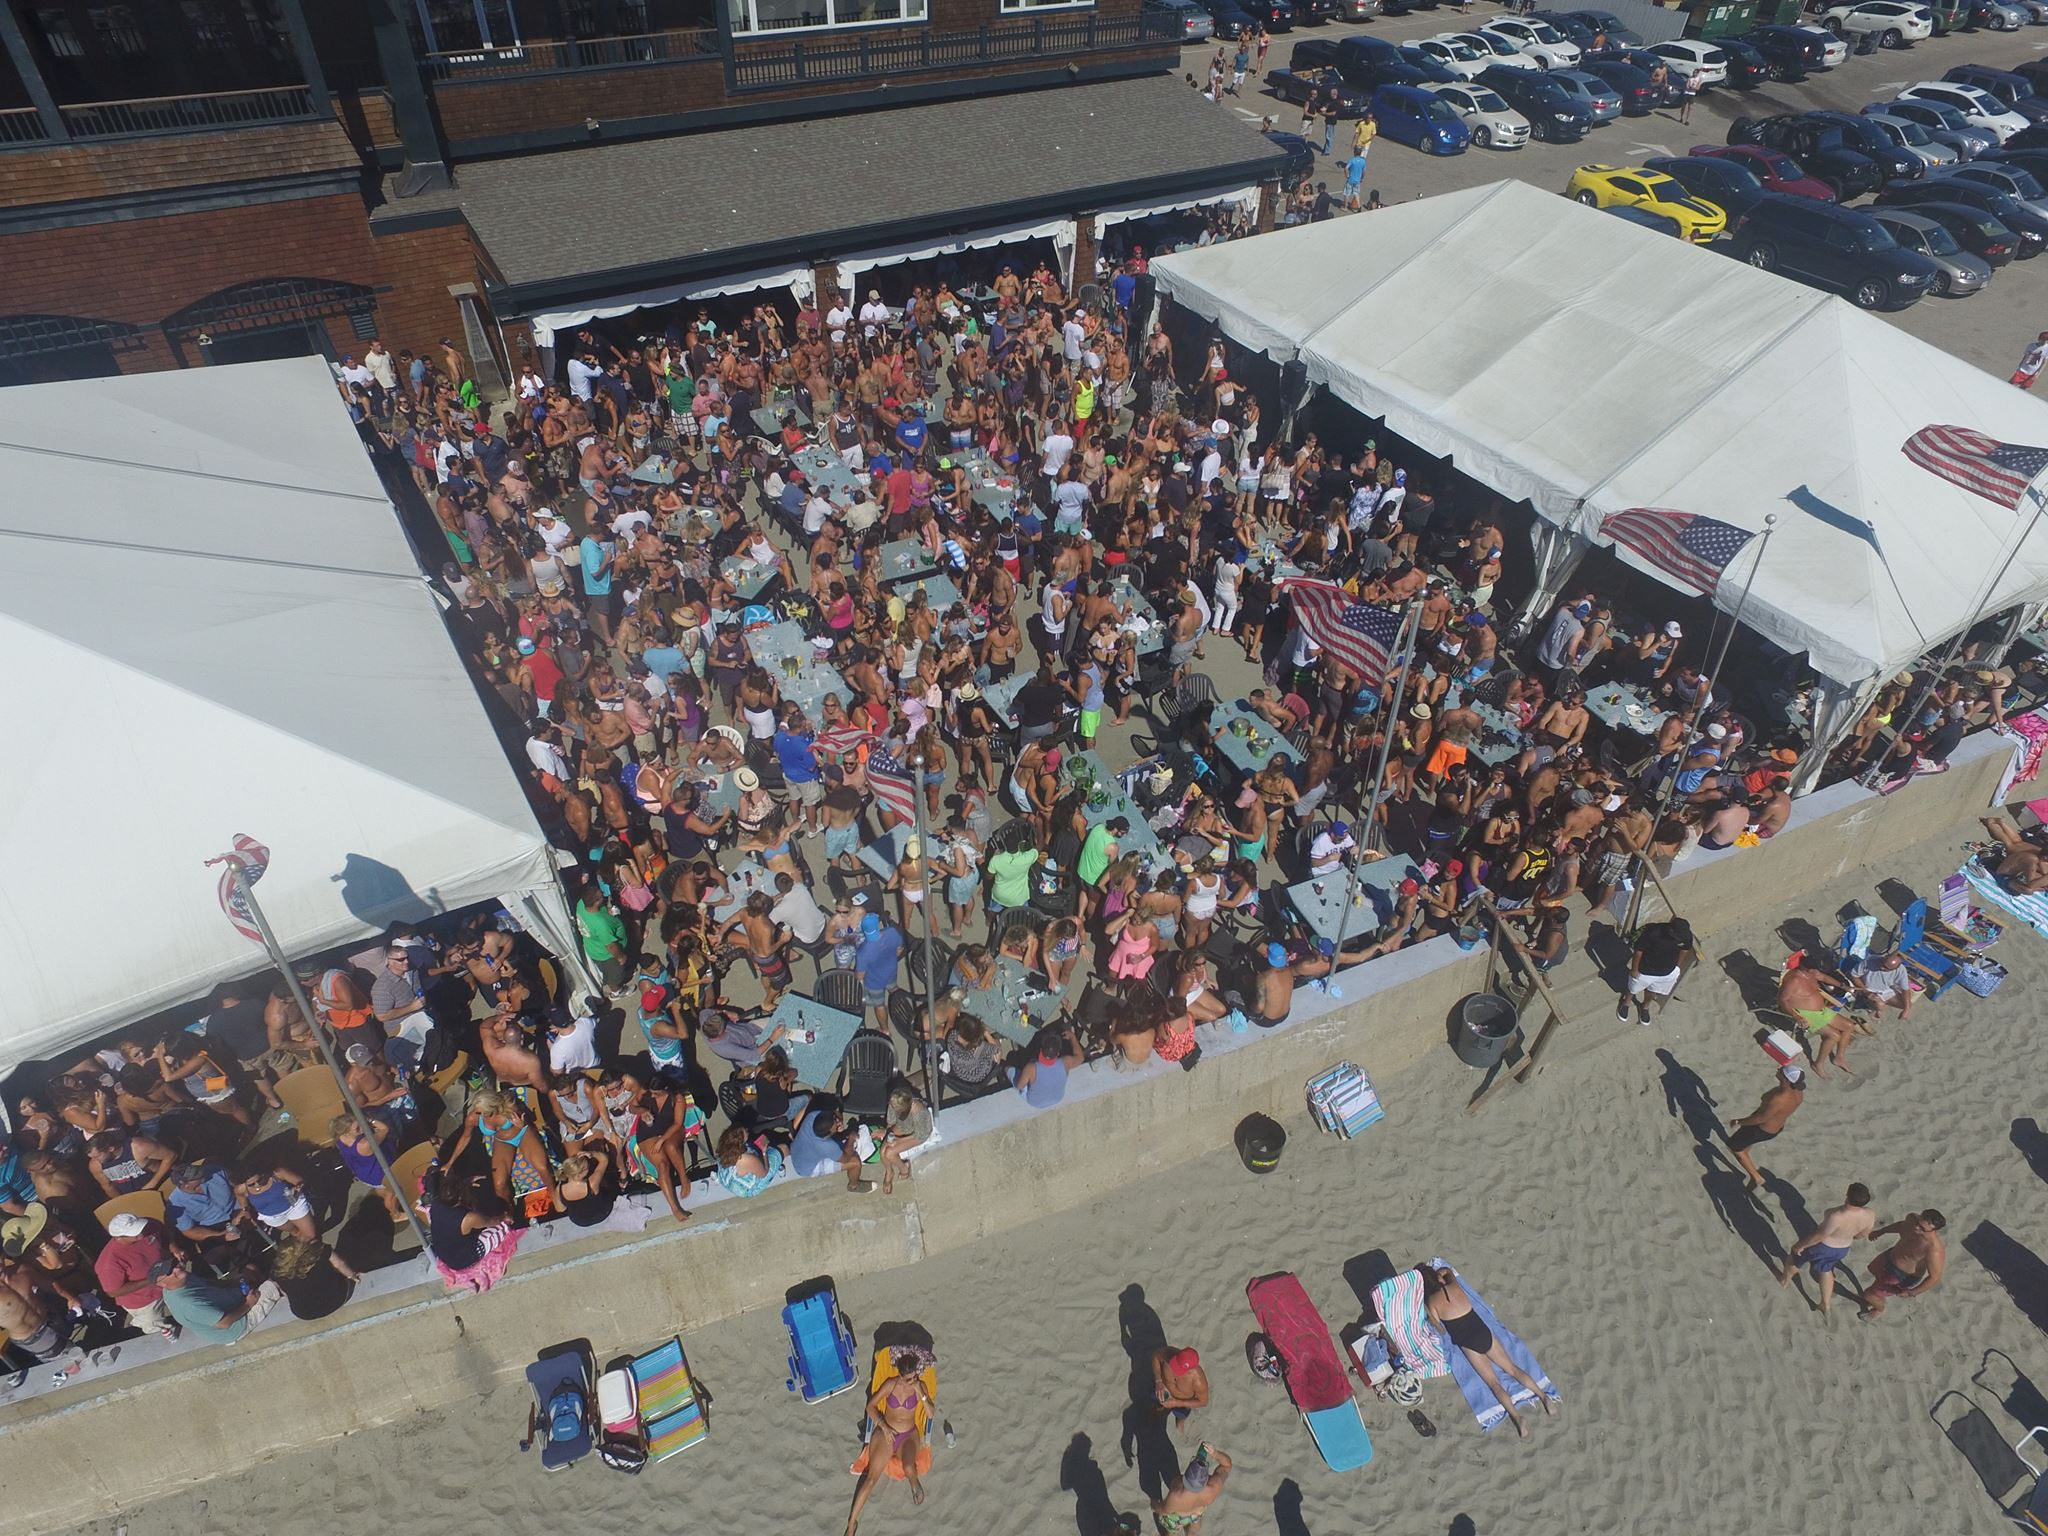 Huge Turnout For Final Weekend Of Live Music On Atlantic Beach